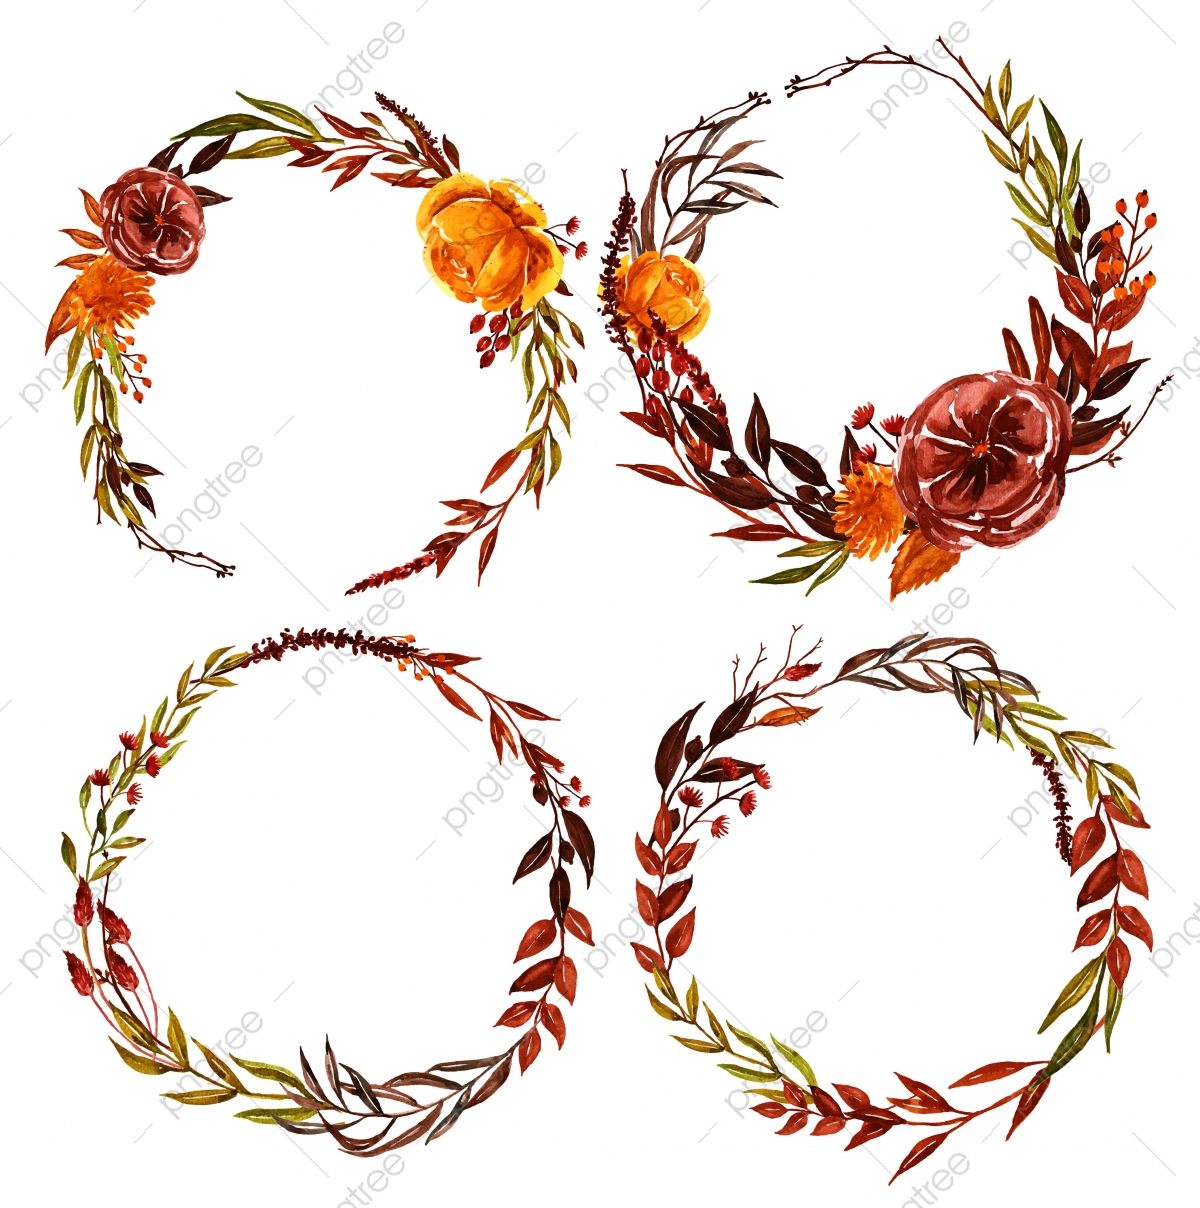 Watercolor Fall Floral Floral And Leaf Wreath Fall Nature